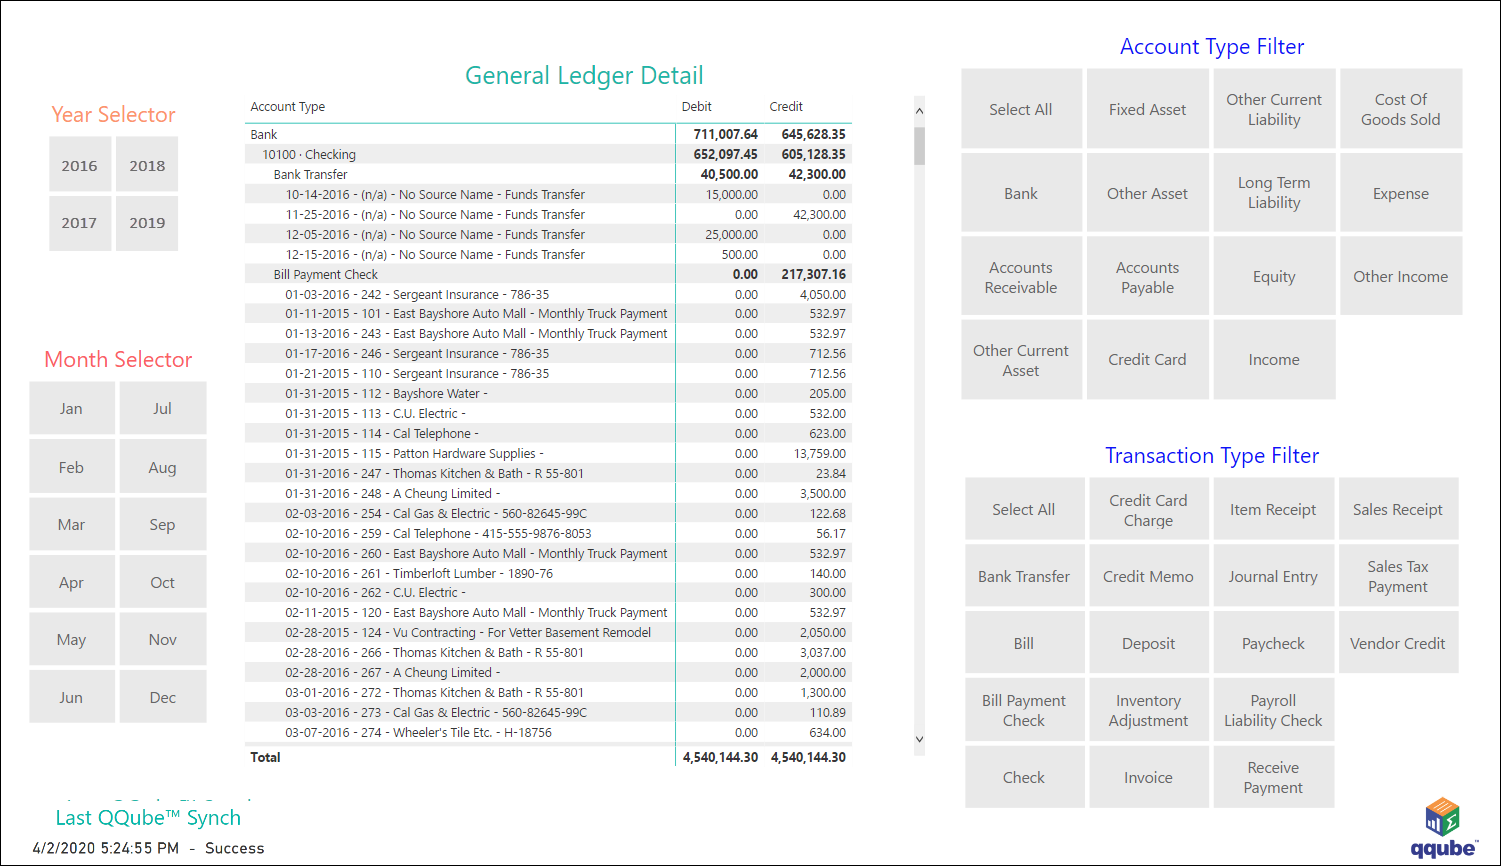 QuickBooks General Ledger Detail using QQube with Power BI